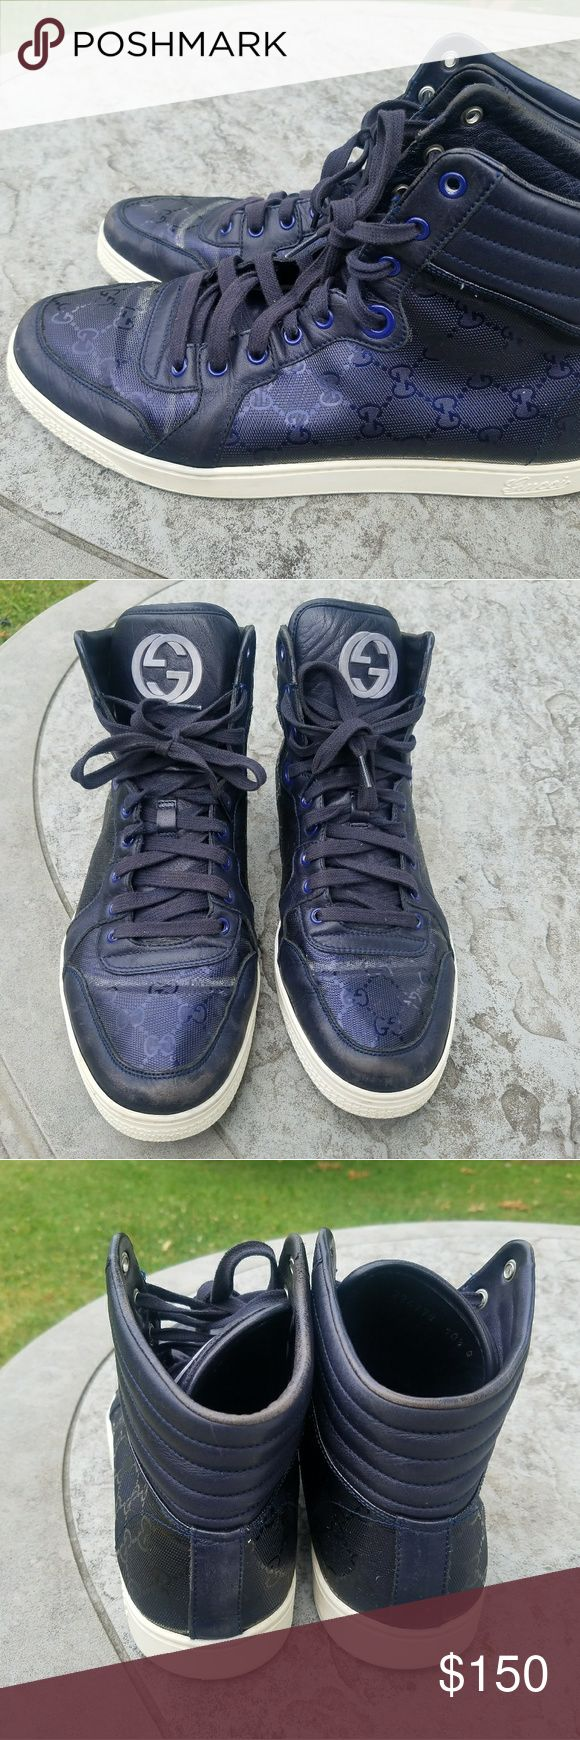 Gucci high top sneakers size 10.5 Sneakers are in good condition aside from scuffs on the leather at the toe area. Please study the pictures thoroughly before purchasing.  Please check out our listing for great deals. It's cut big so it also fit size 11. Gucci Shoes Sneakers